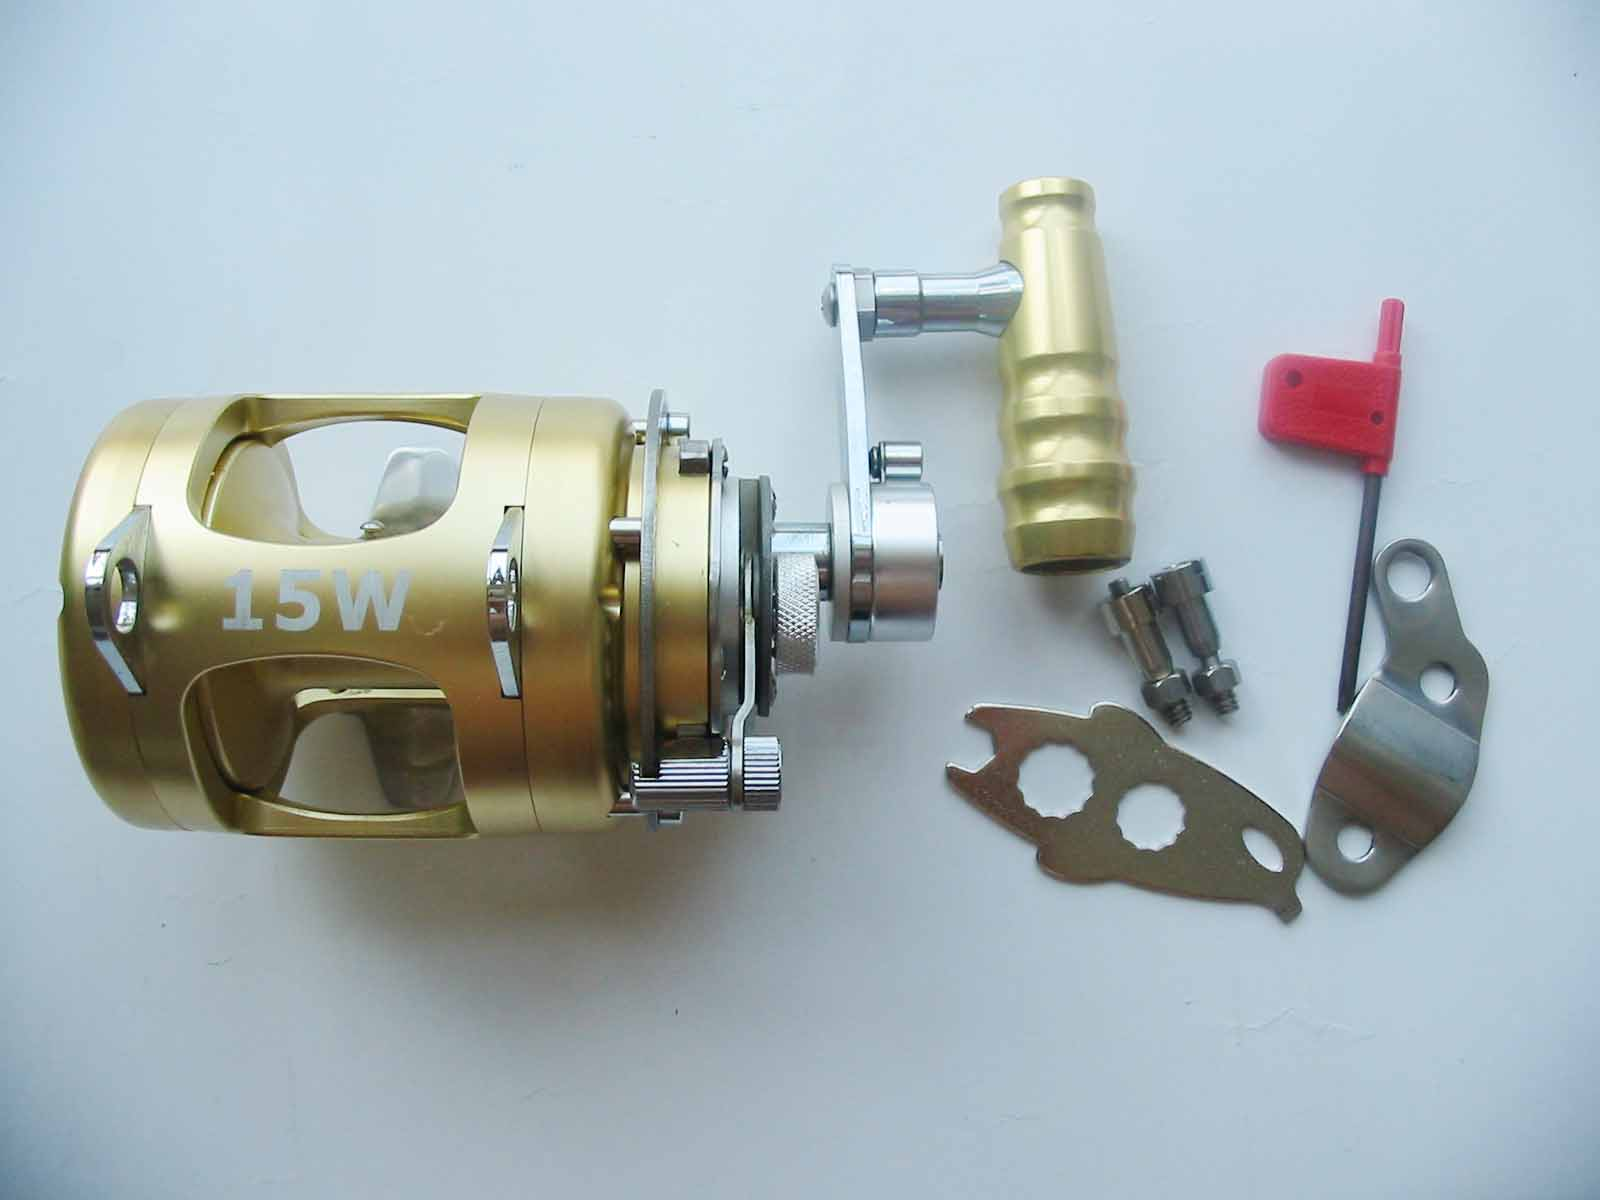 2 speed trolling reels 15W